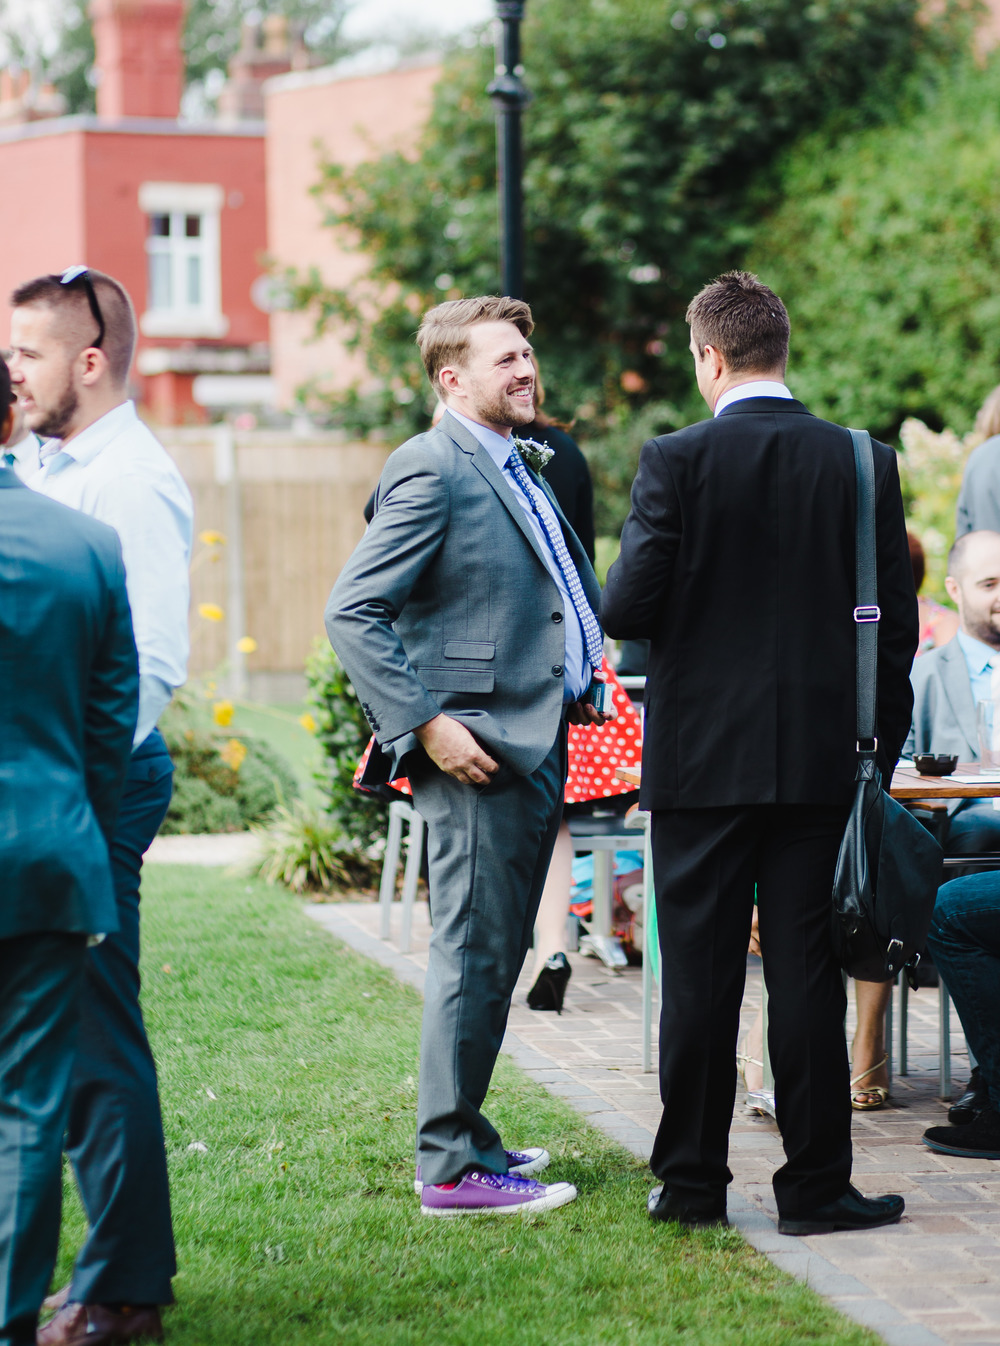 The groom with some of the wedding guests smiling, Outdoor wedding at Avenham Park